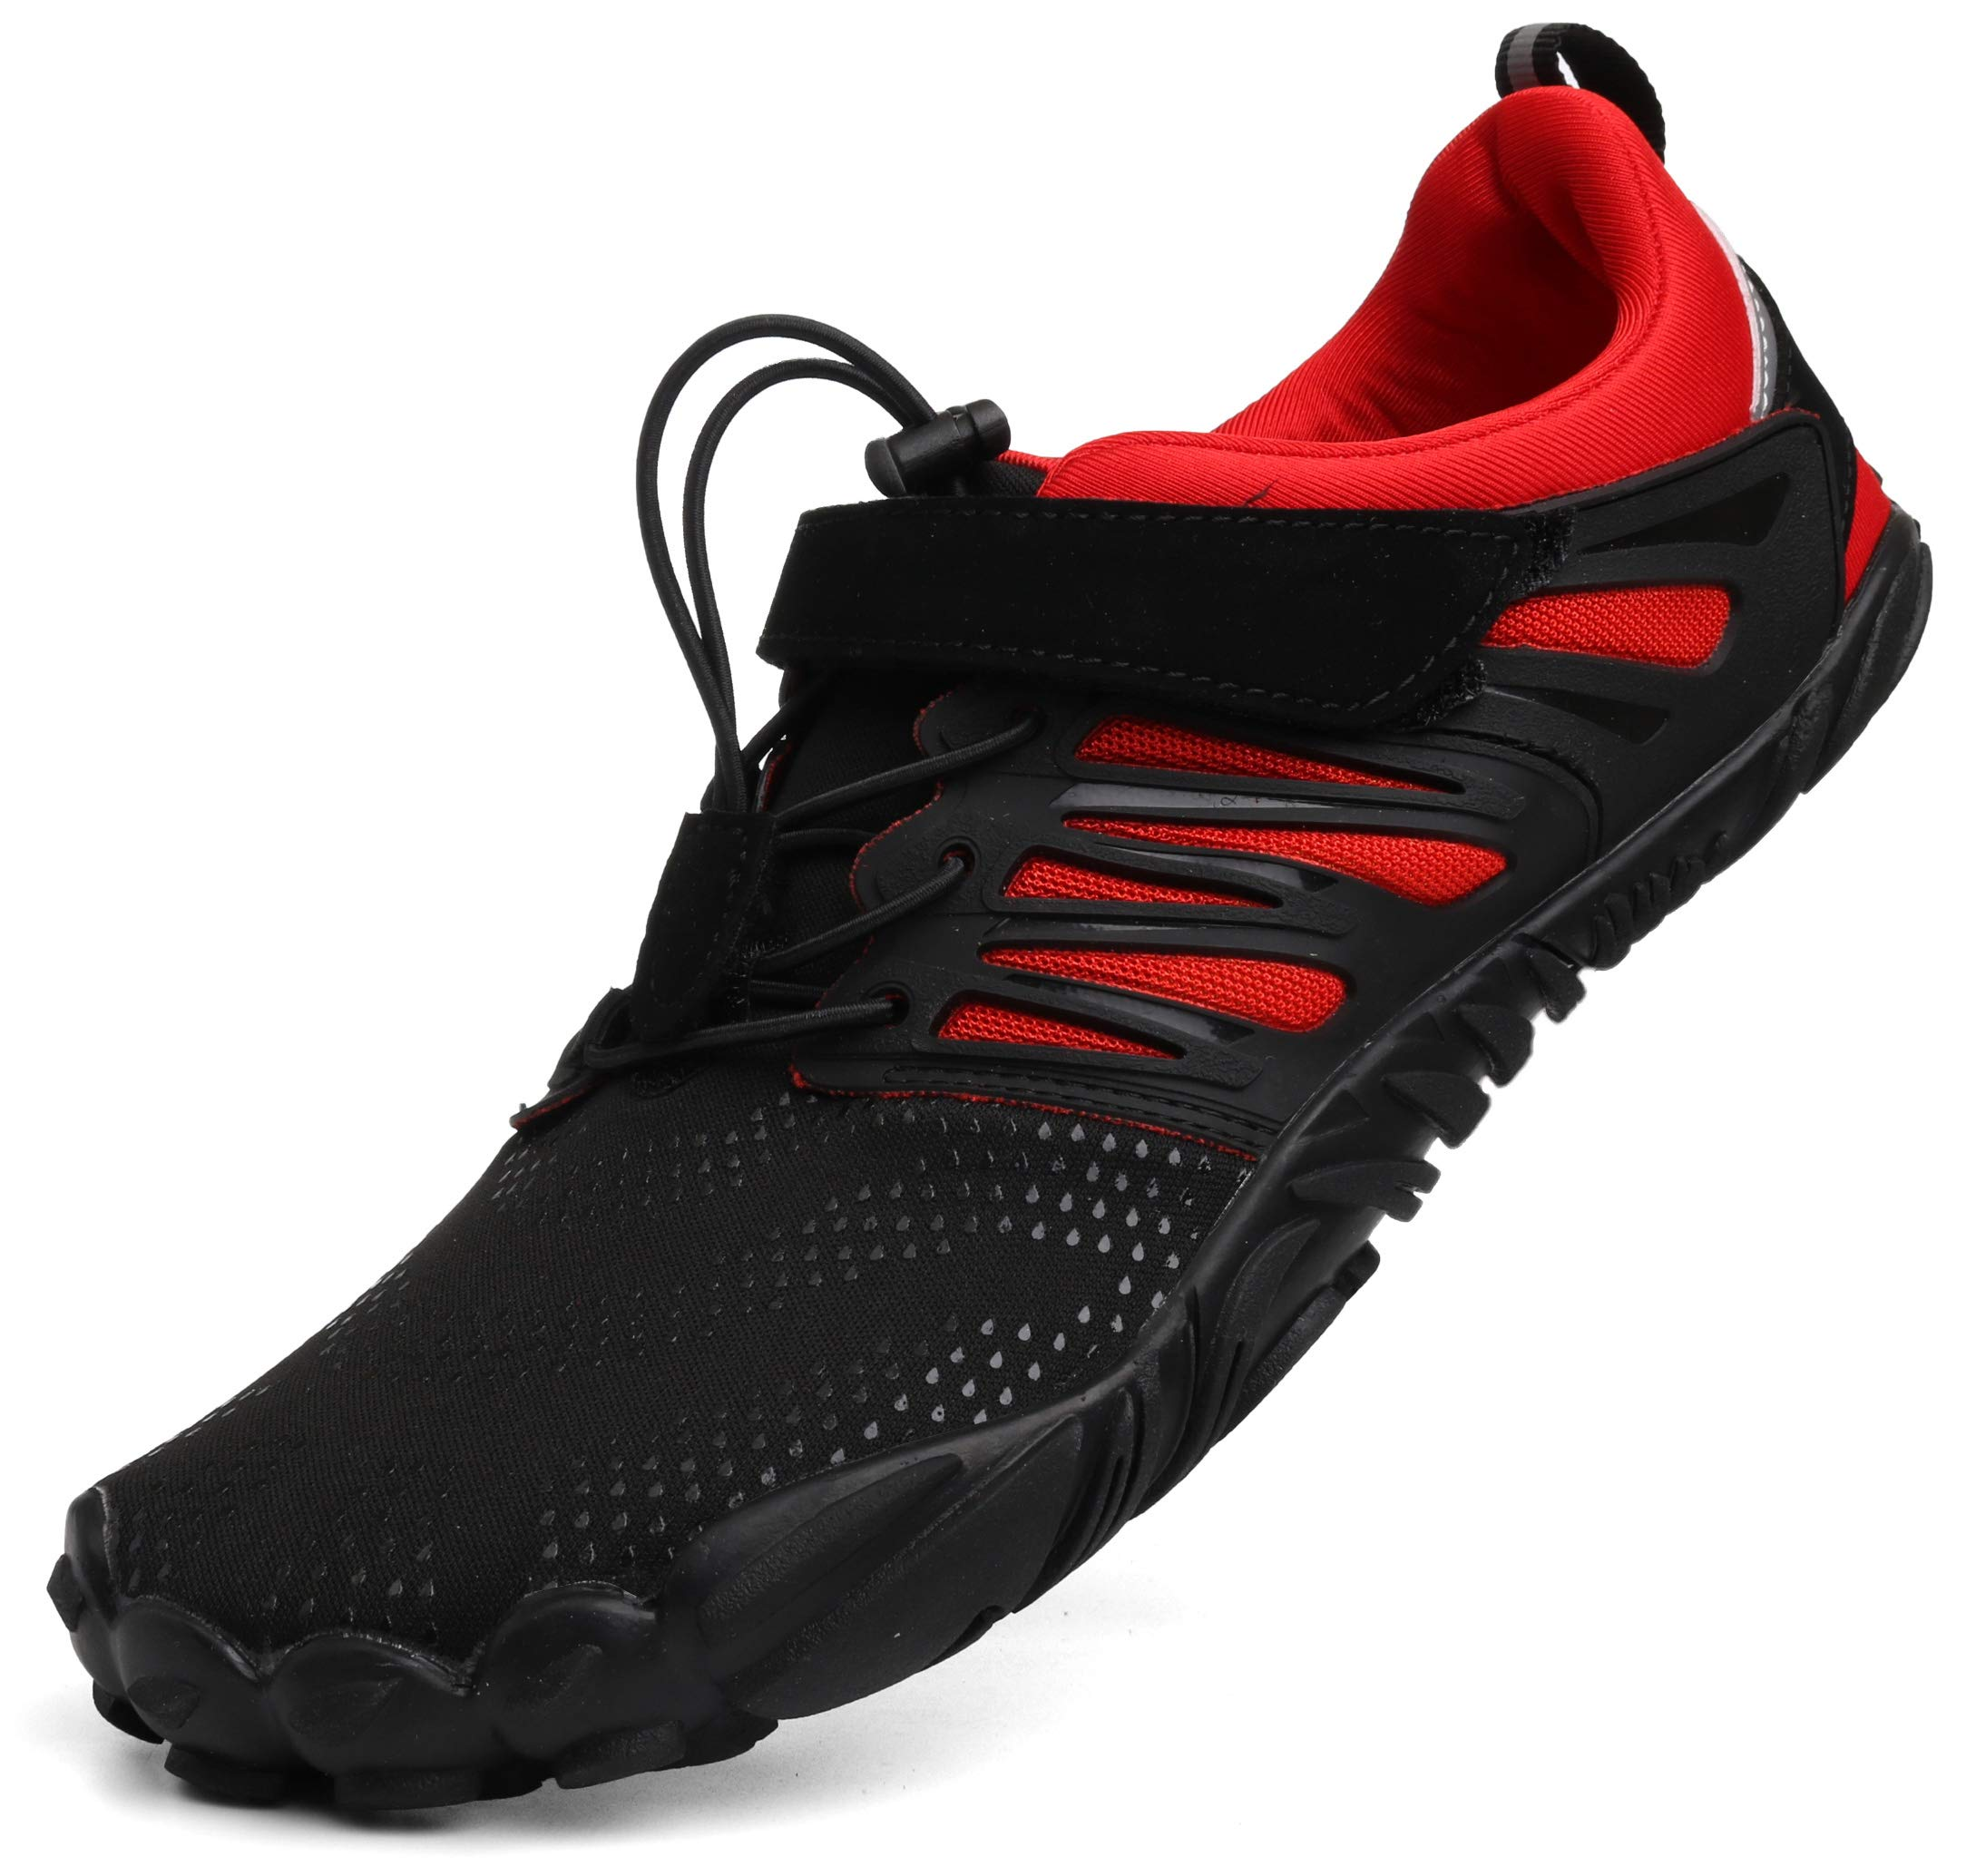 WHITIN Men's Minimalist Barefoot Shoes Low Zero Drop Trail Running 5 Five Fingers Wide Toe Box for Male Free Breathable Fitness red Size 12 by WHITIN